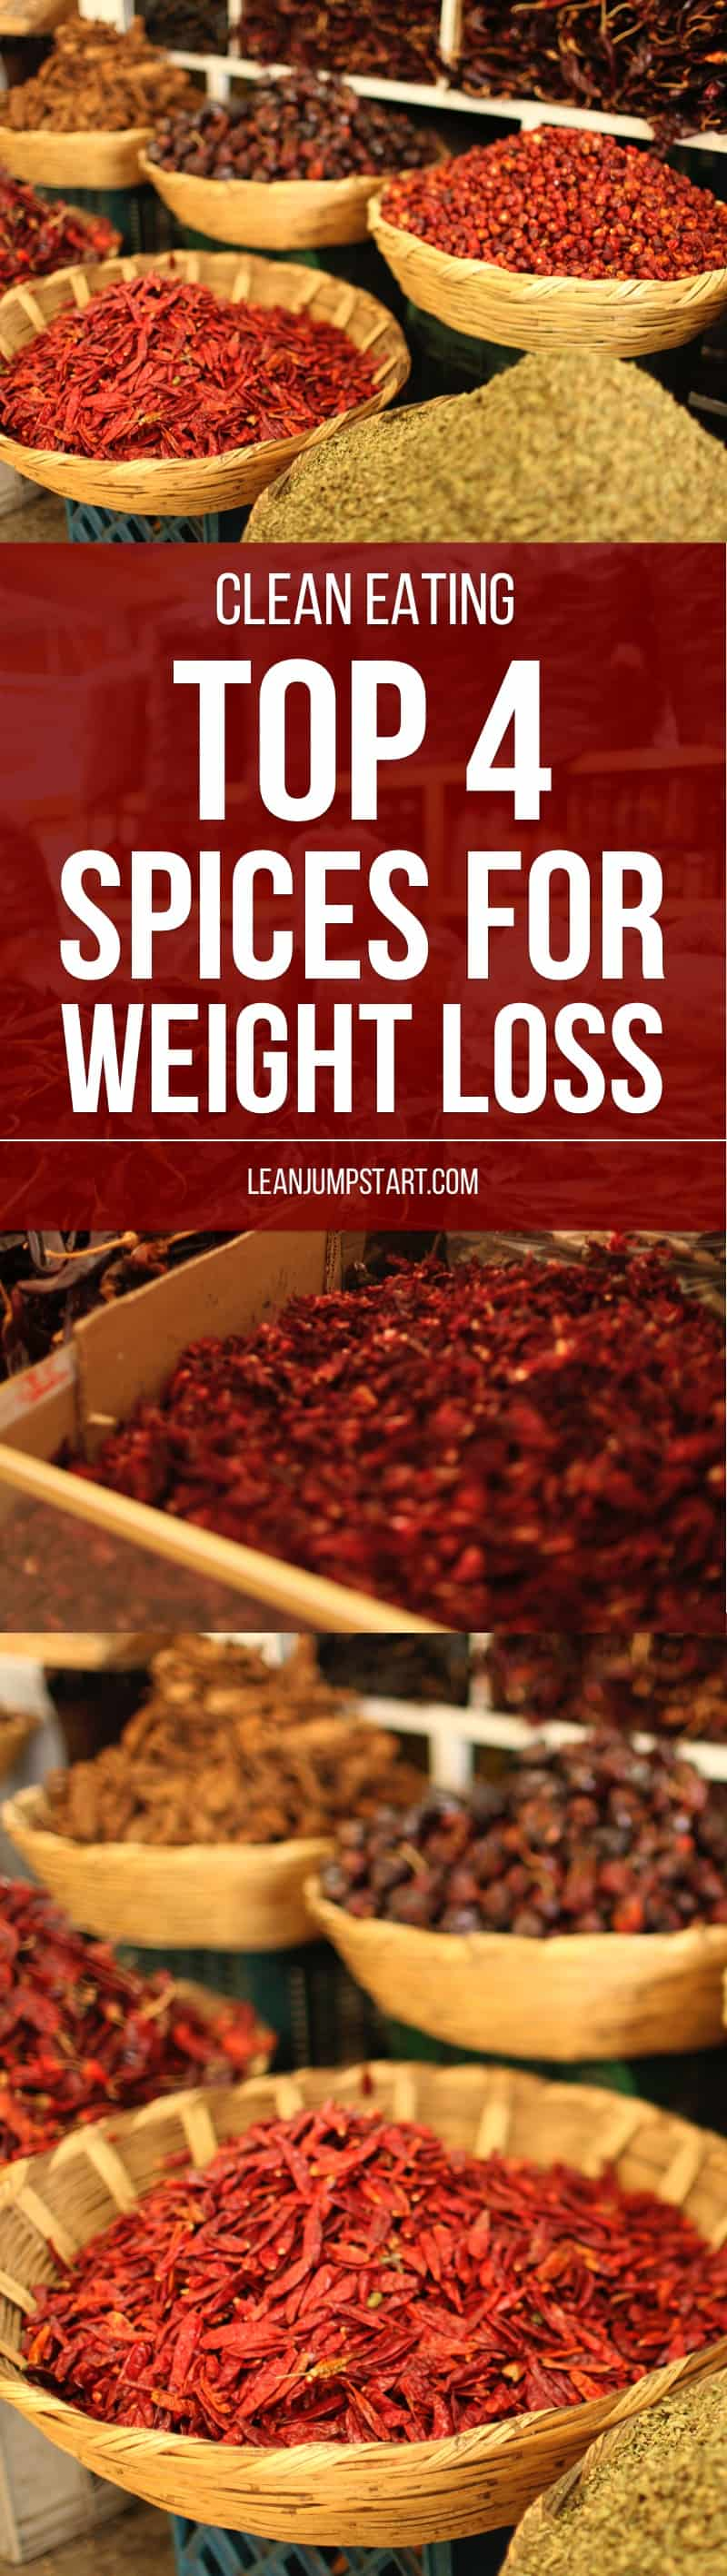 Top 4 spices for weight loss that should not miss in your clean eating kitchen. Click through!